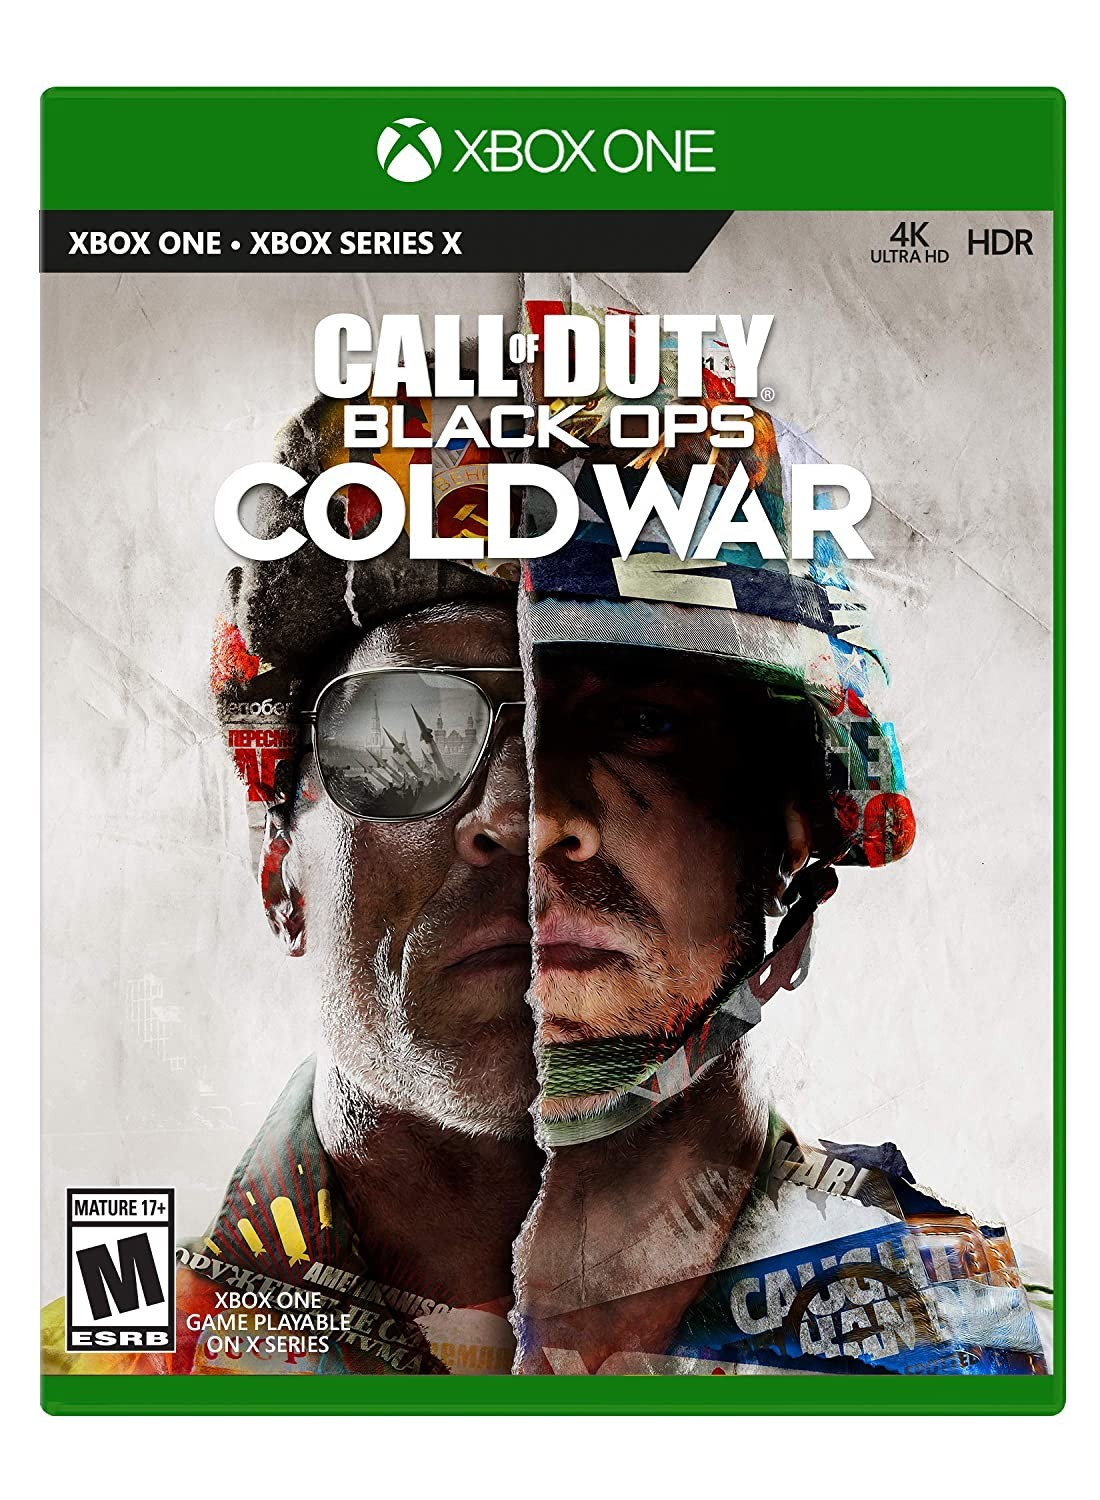 Call of Duty Black Ops Cold War XONE